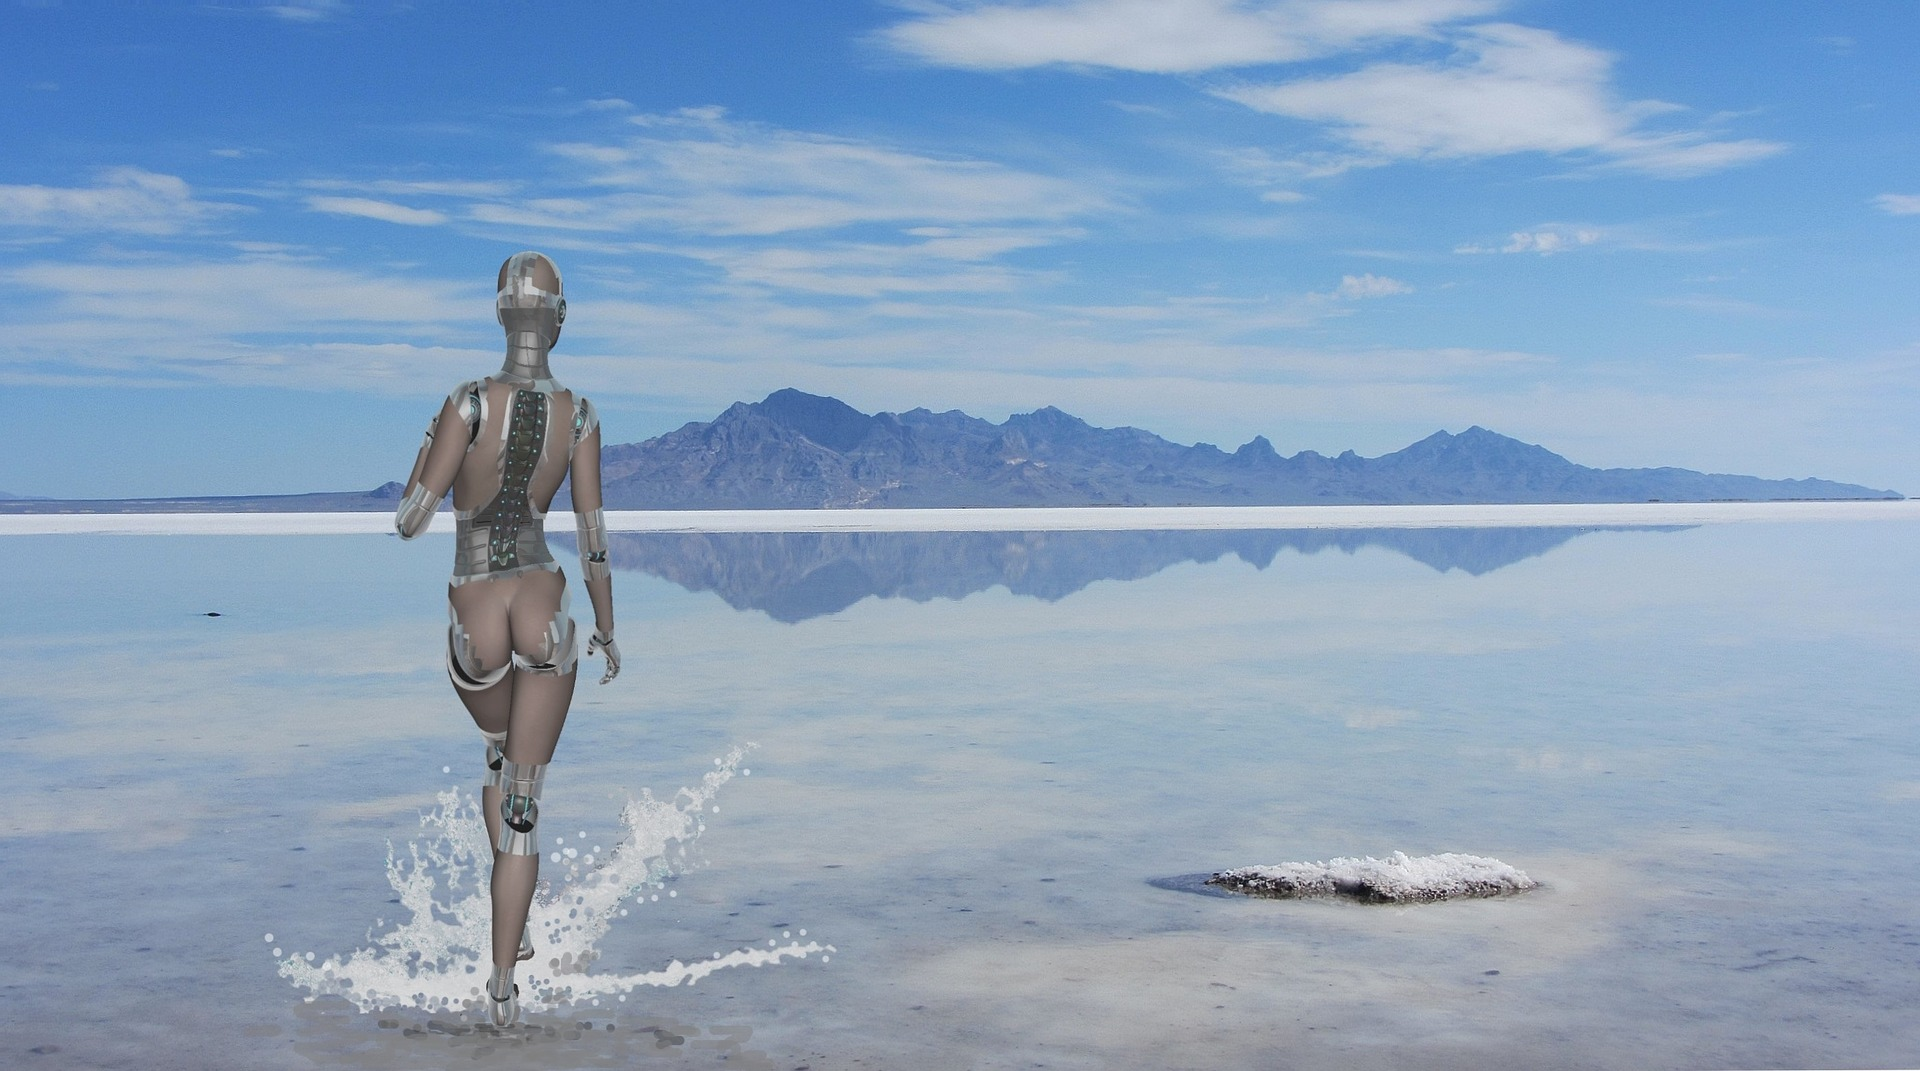 Gender flipping disposable male characters